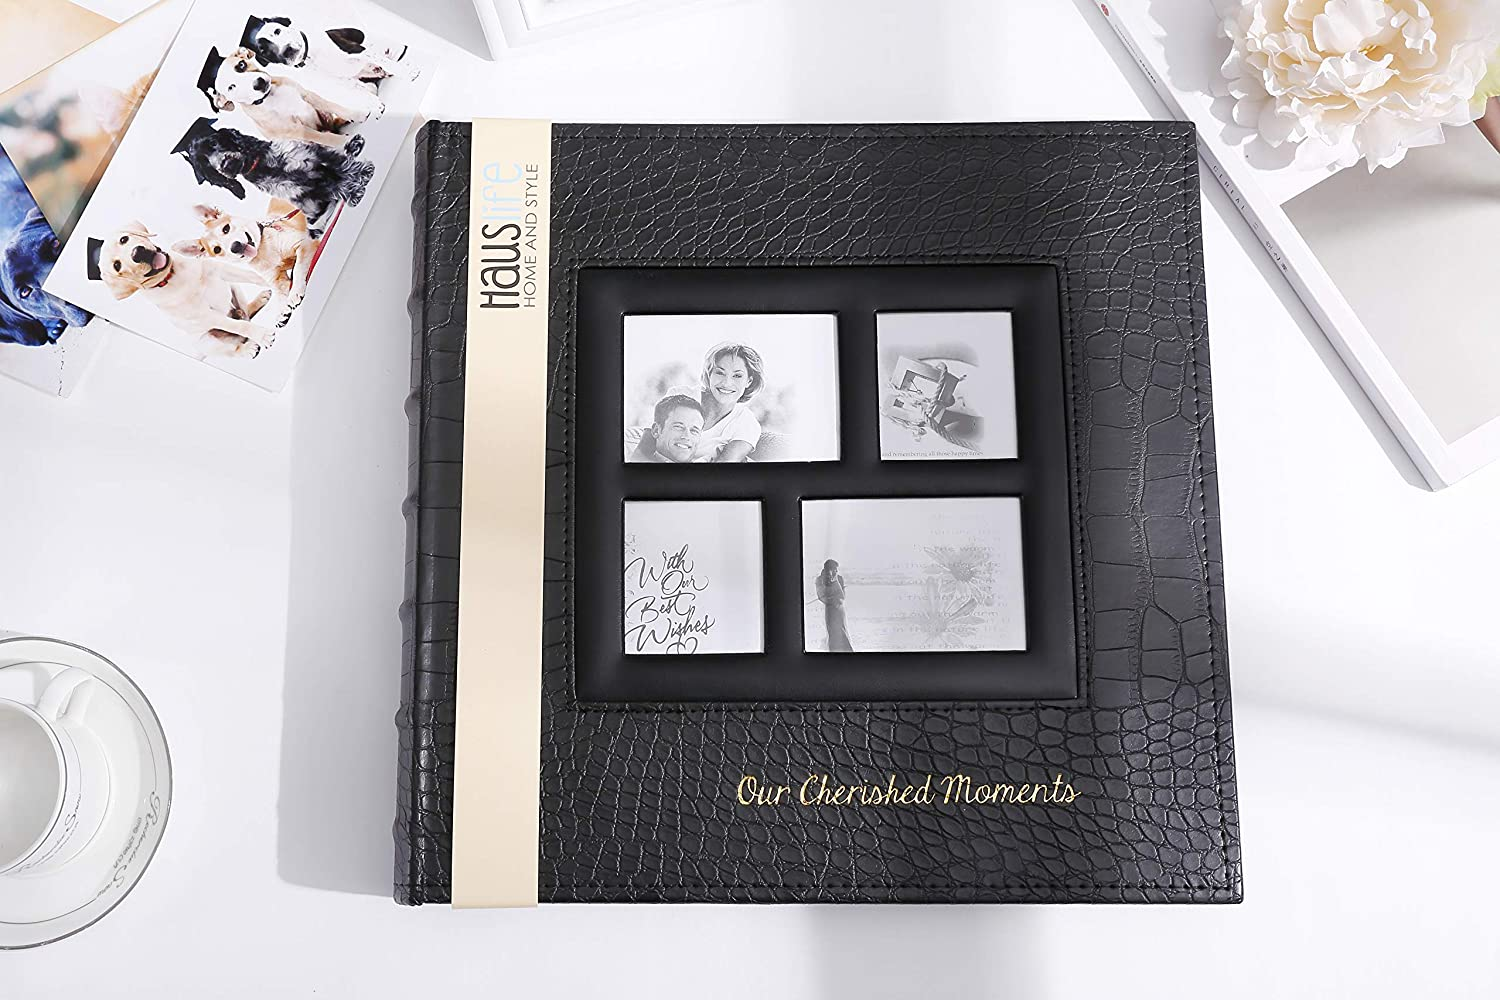 5x7 Photo Album Self Adhesive Magnetic Family Albums 13.3x13.4 Inches Self Stick Sticky Picture Albums with Magnetic Pages for Wedding//Birthday 3x5 8x10 Photos 4x6 30 Sheets 30sheets, black1 6x8